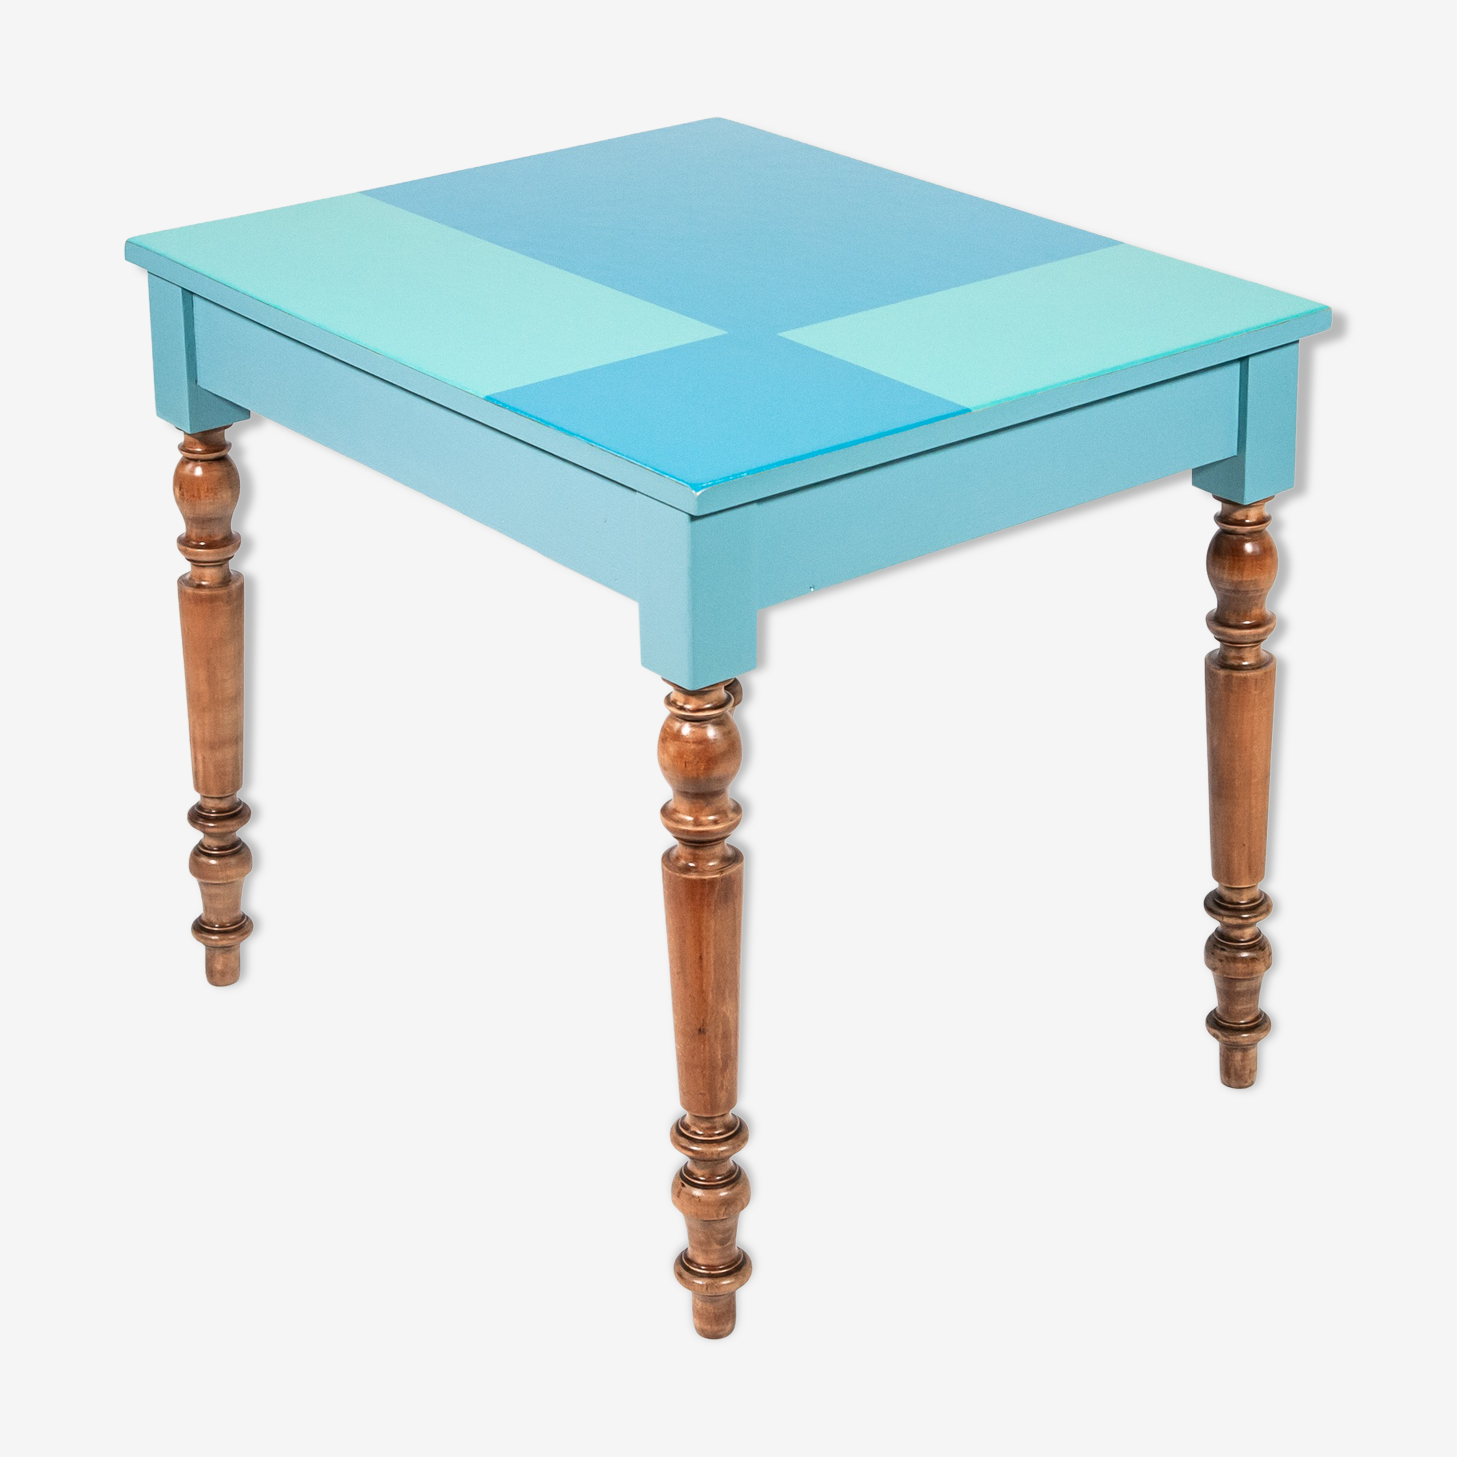 Rectangular table in blue and green wood and rustic feet